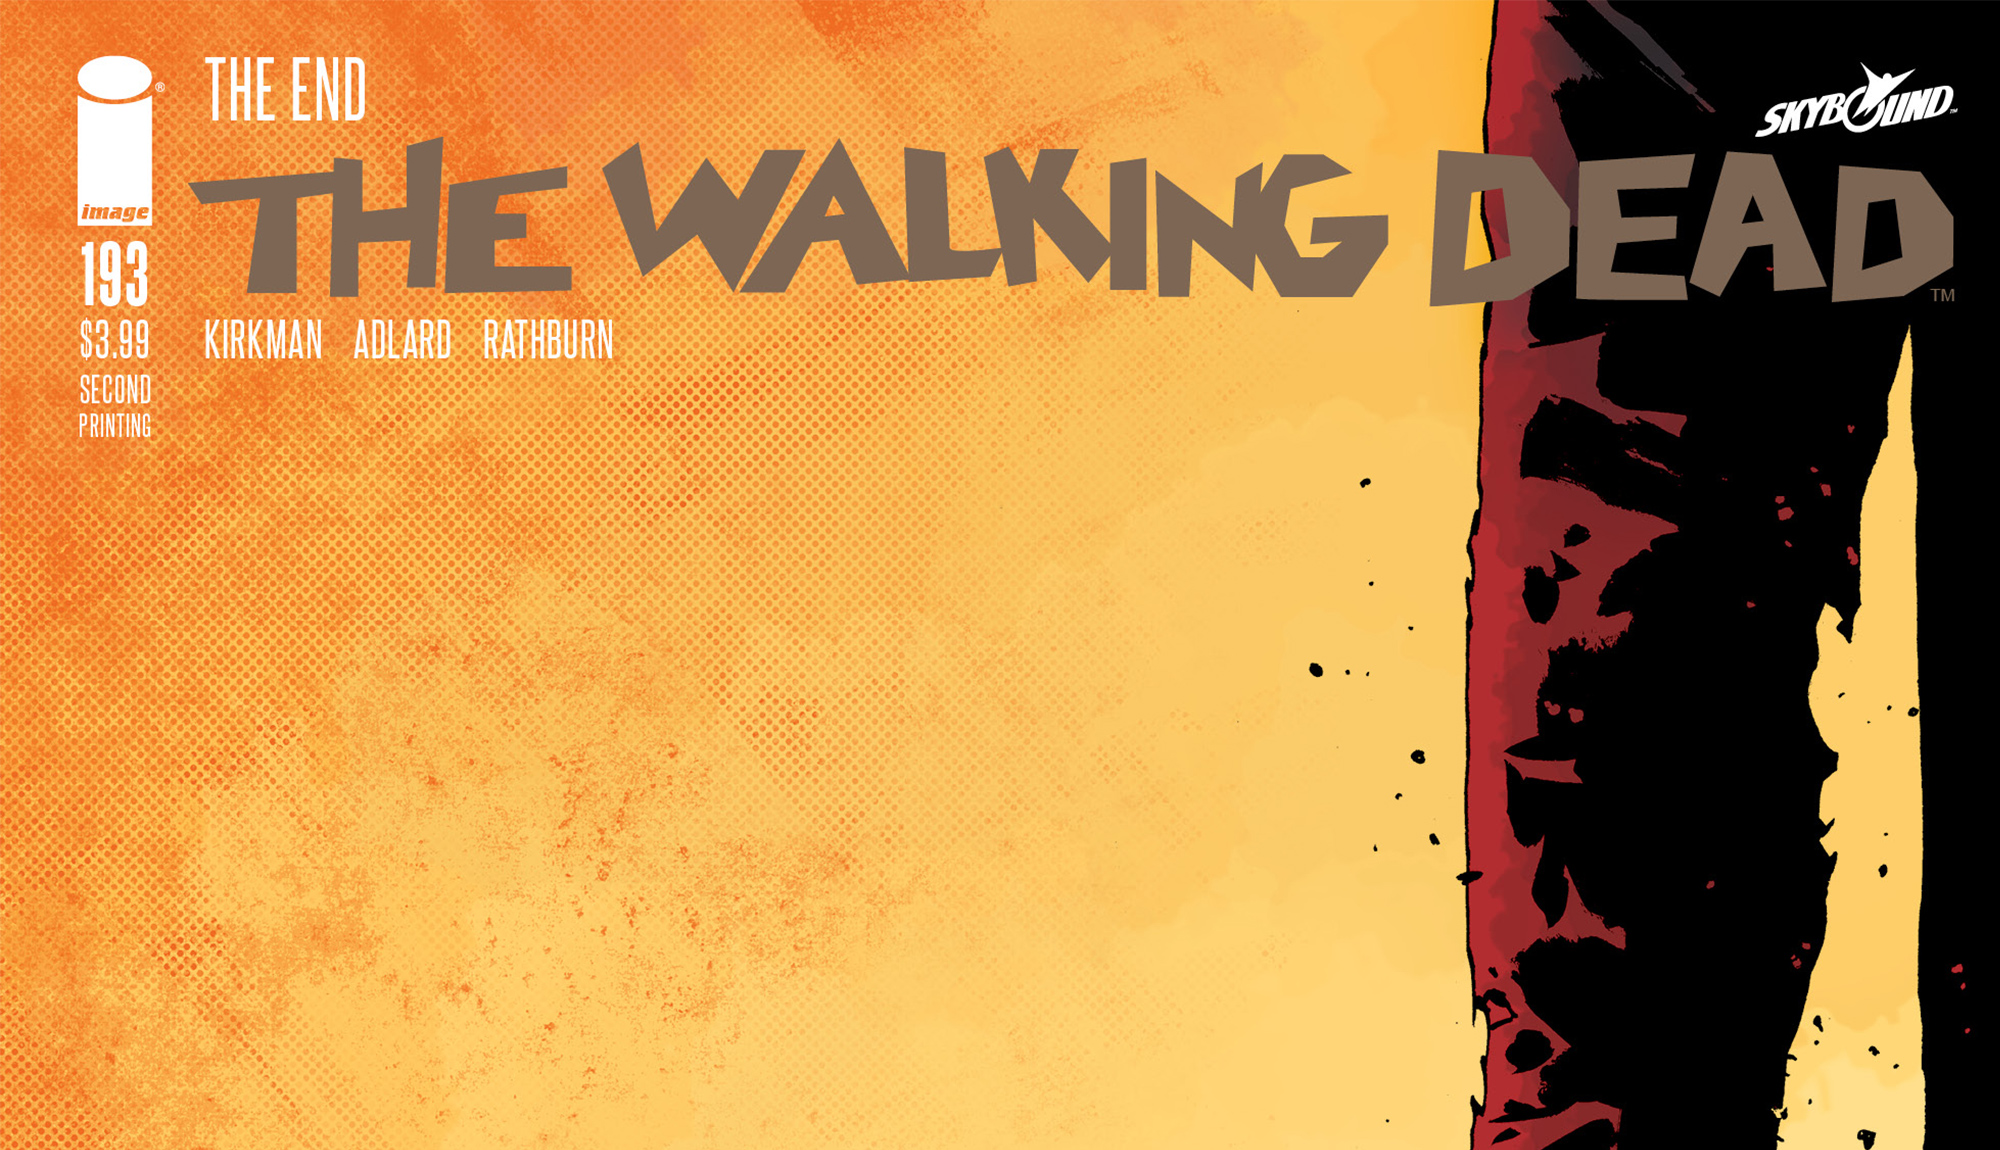 THE WALKING DEAD #193 1ST FIRST PRINTING FINAL ISSUE SHERIFF KAPOOR IMAGE 2019